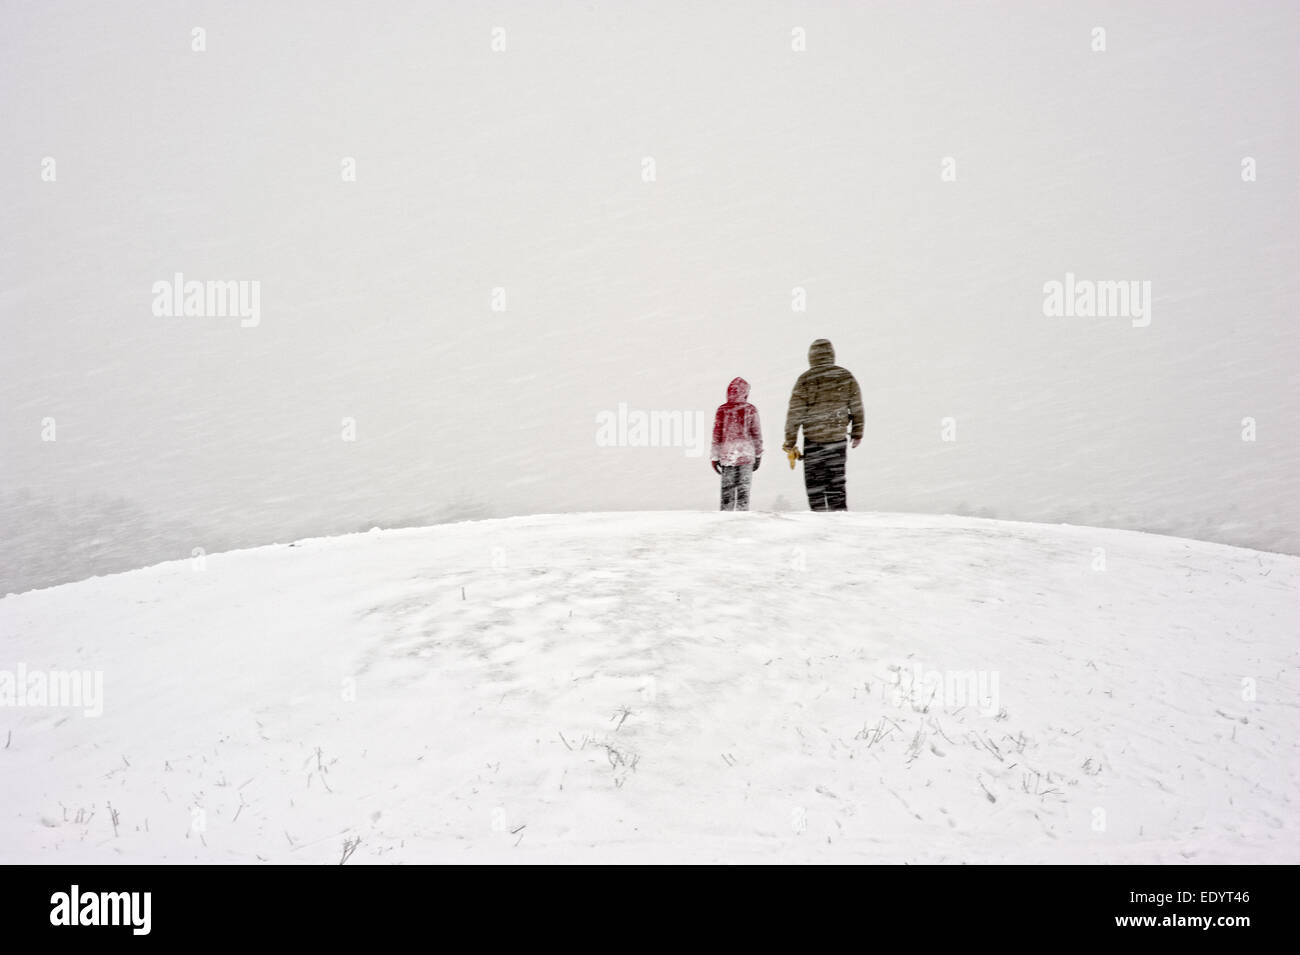 Dunstable downs snow father and child. credit: LEE RAMSDEN / ALAMY Stock Photo